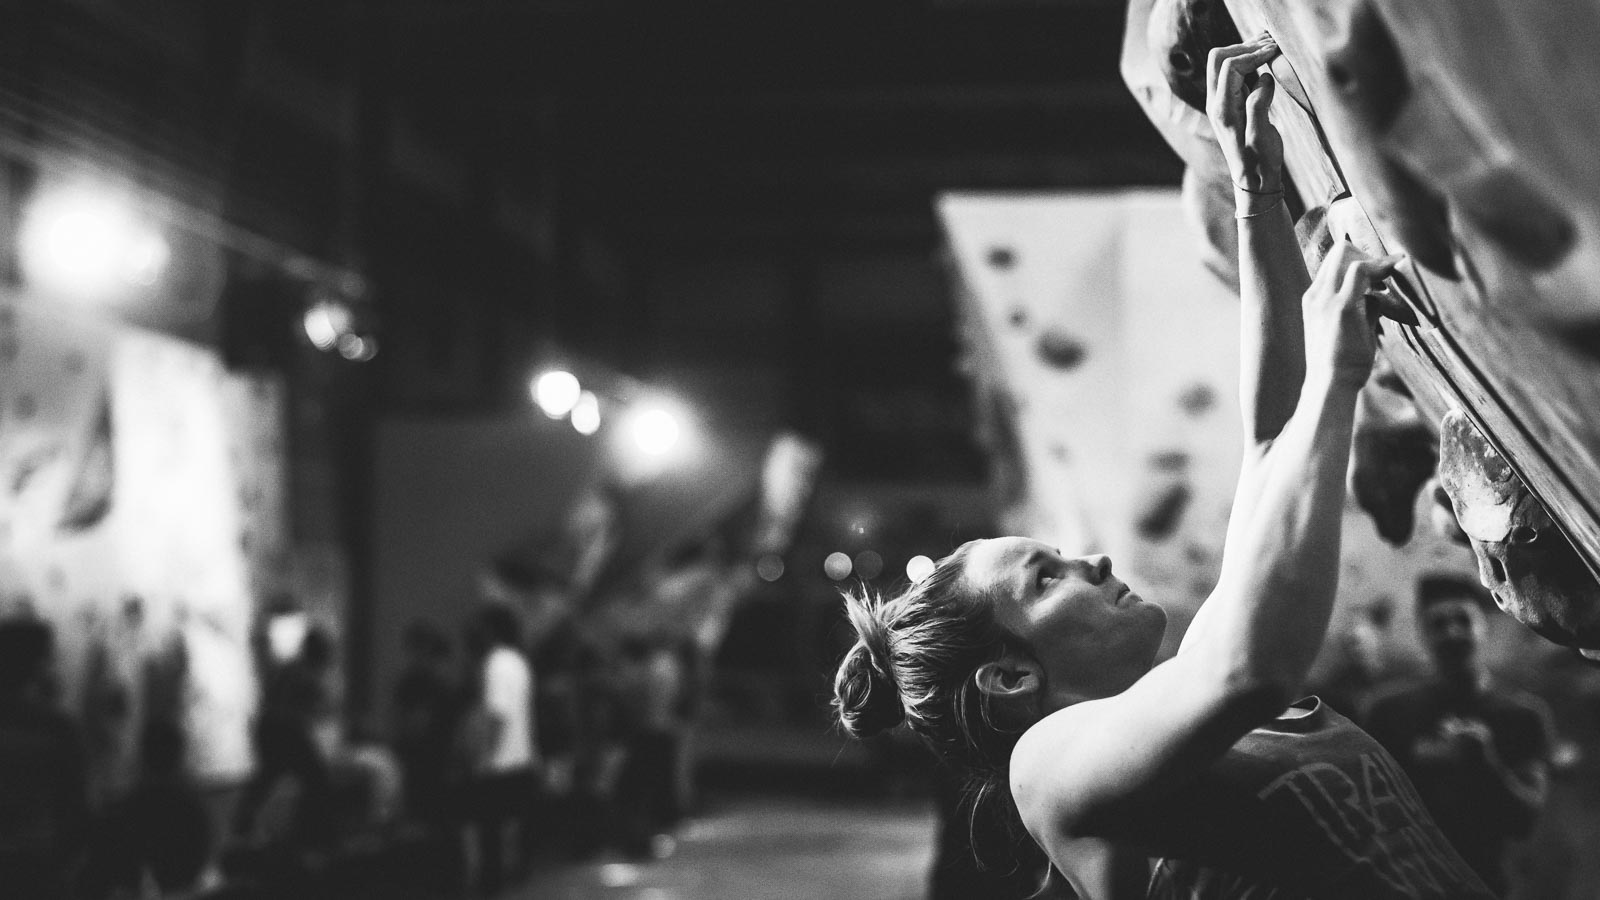 Female climber focused on a hold in an indoor boulder gym